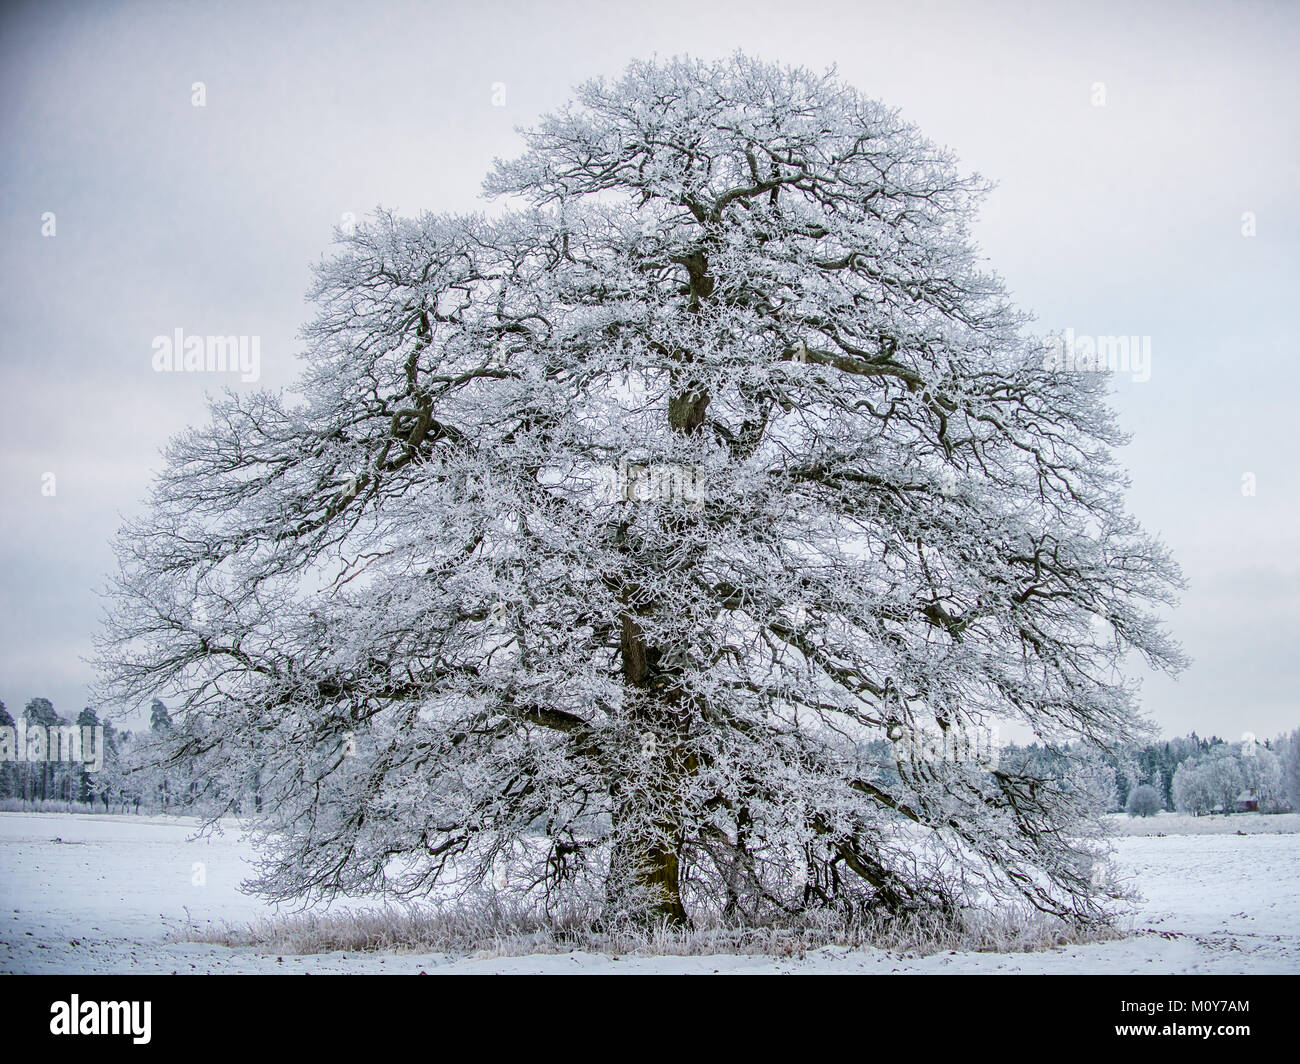 The Frosty Grand Old Oak a january day in Uppland, Sweden - Stock Image